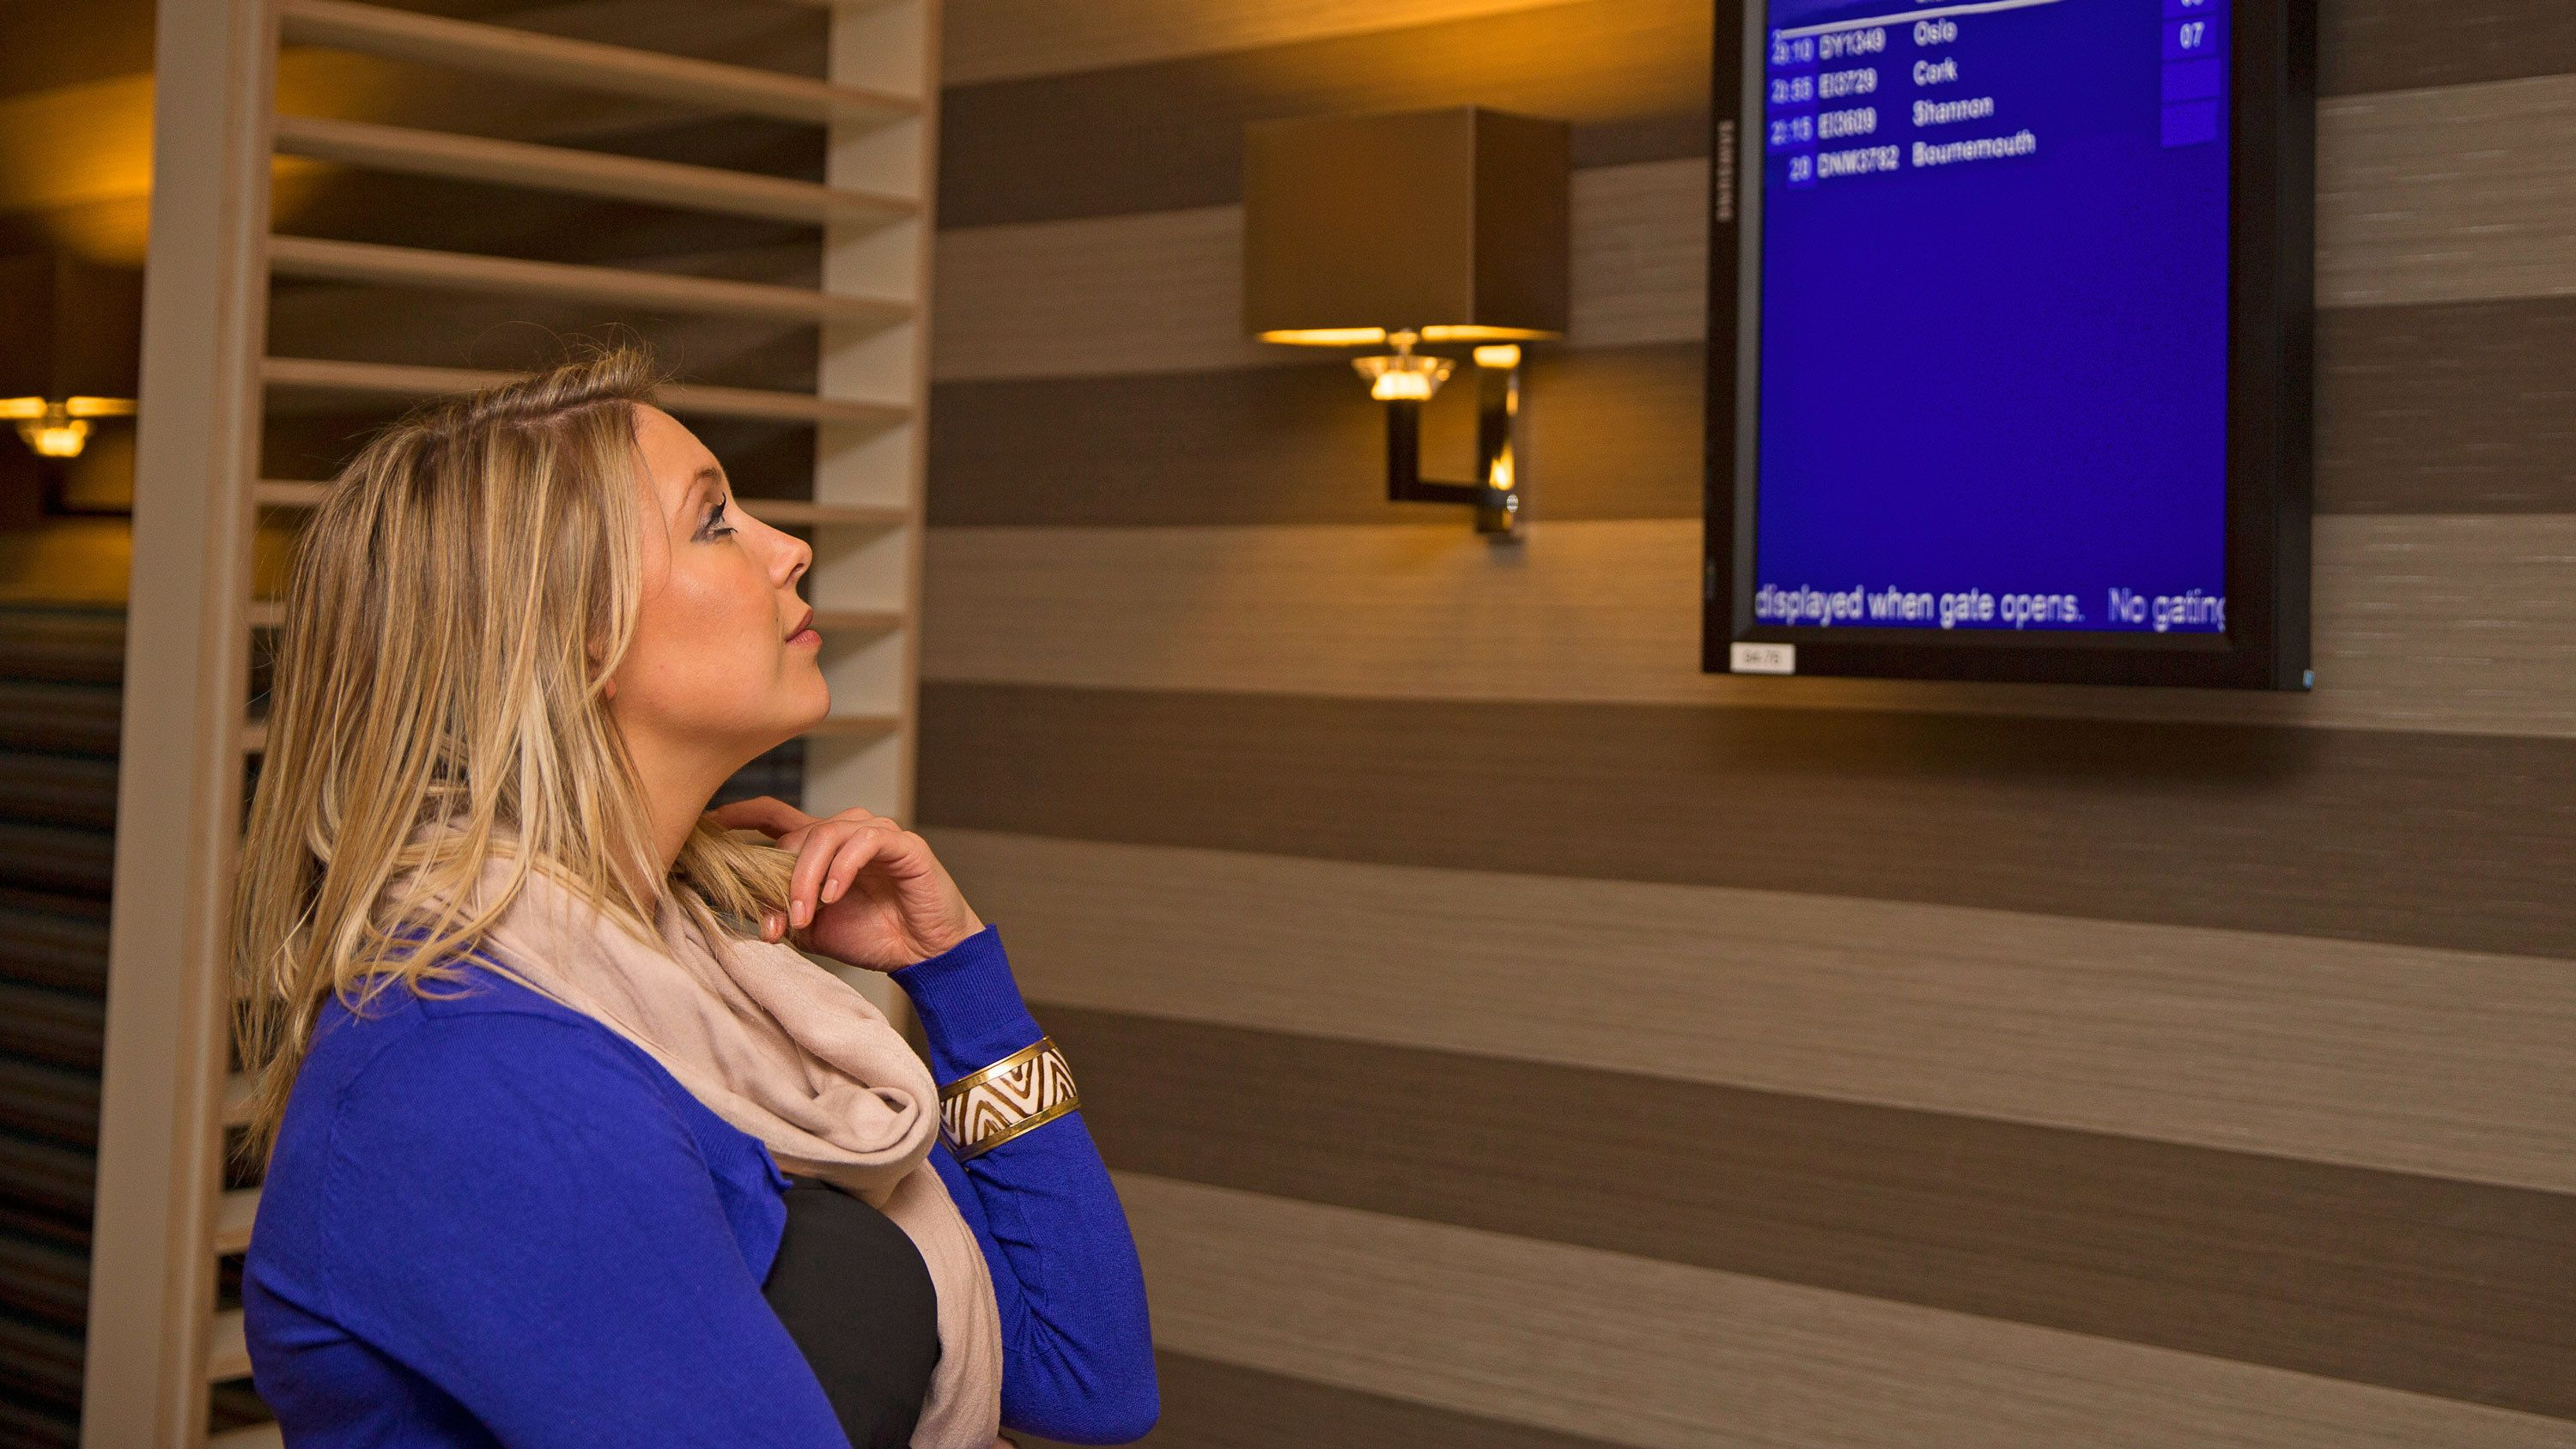 Woman looking at flight information on an airport lounge monitor